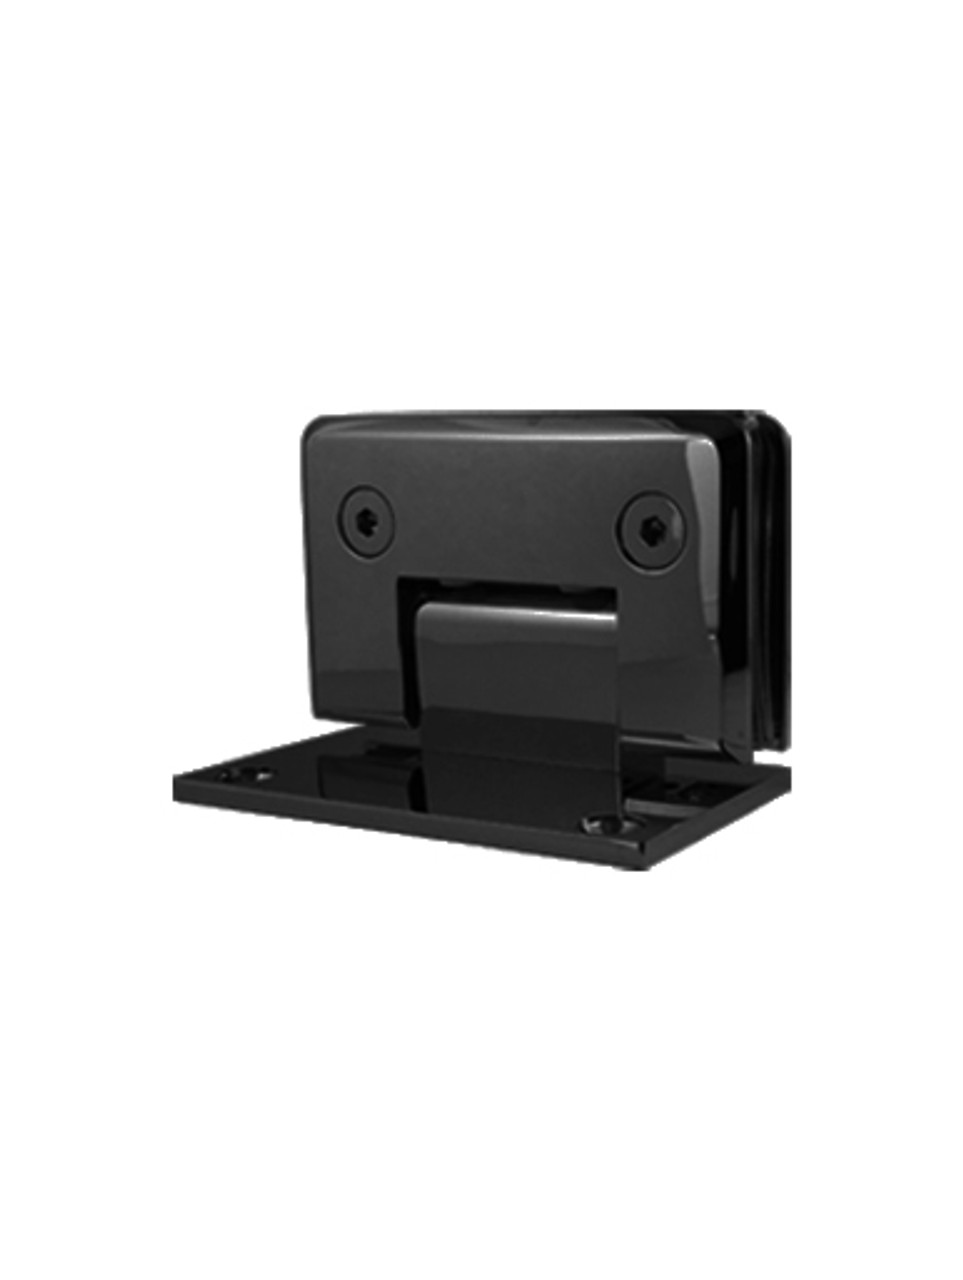 SHOPAWMBL Wall Mount Offset Back Plate Hinge in Matte Black Finish